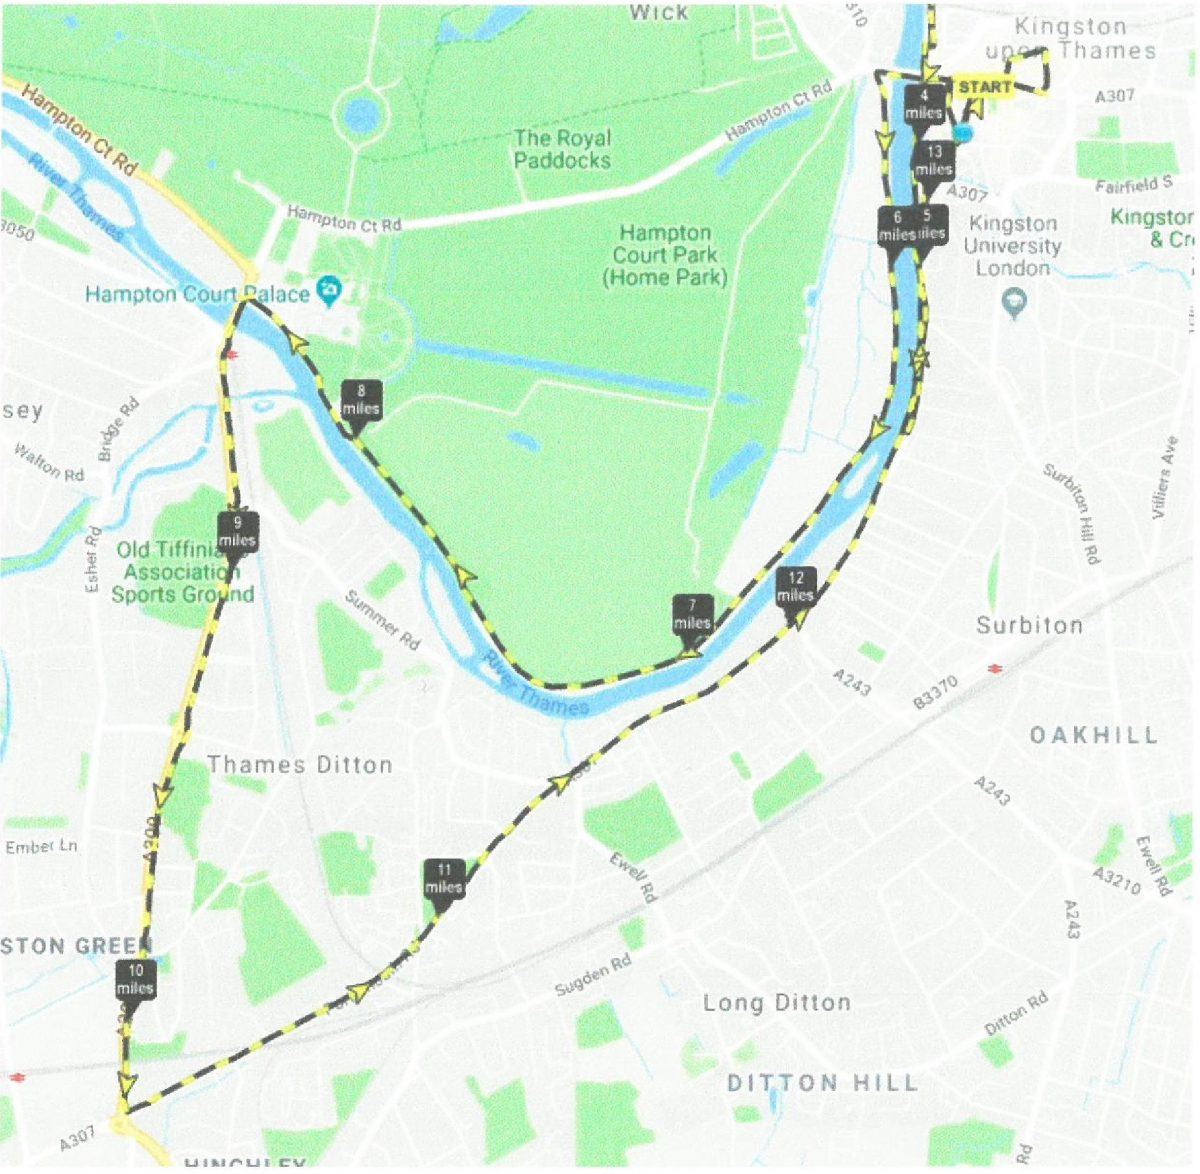 Marathon route through the scenic Thames